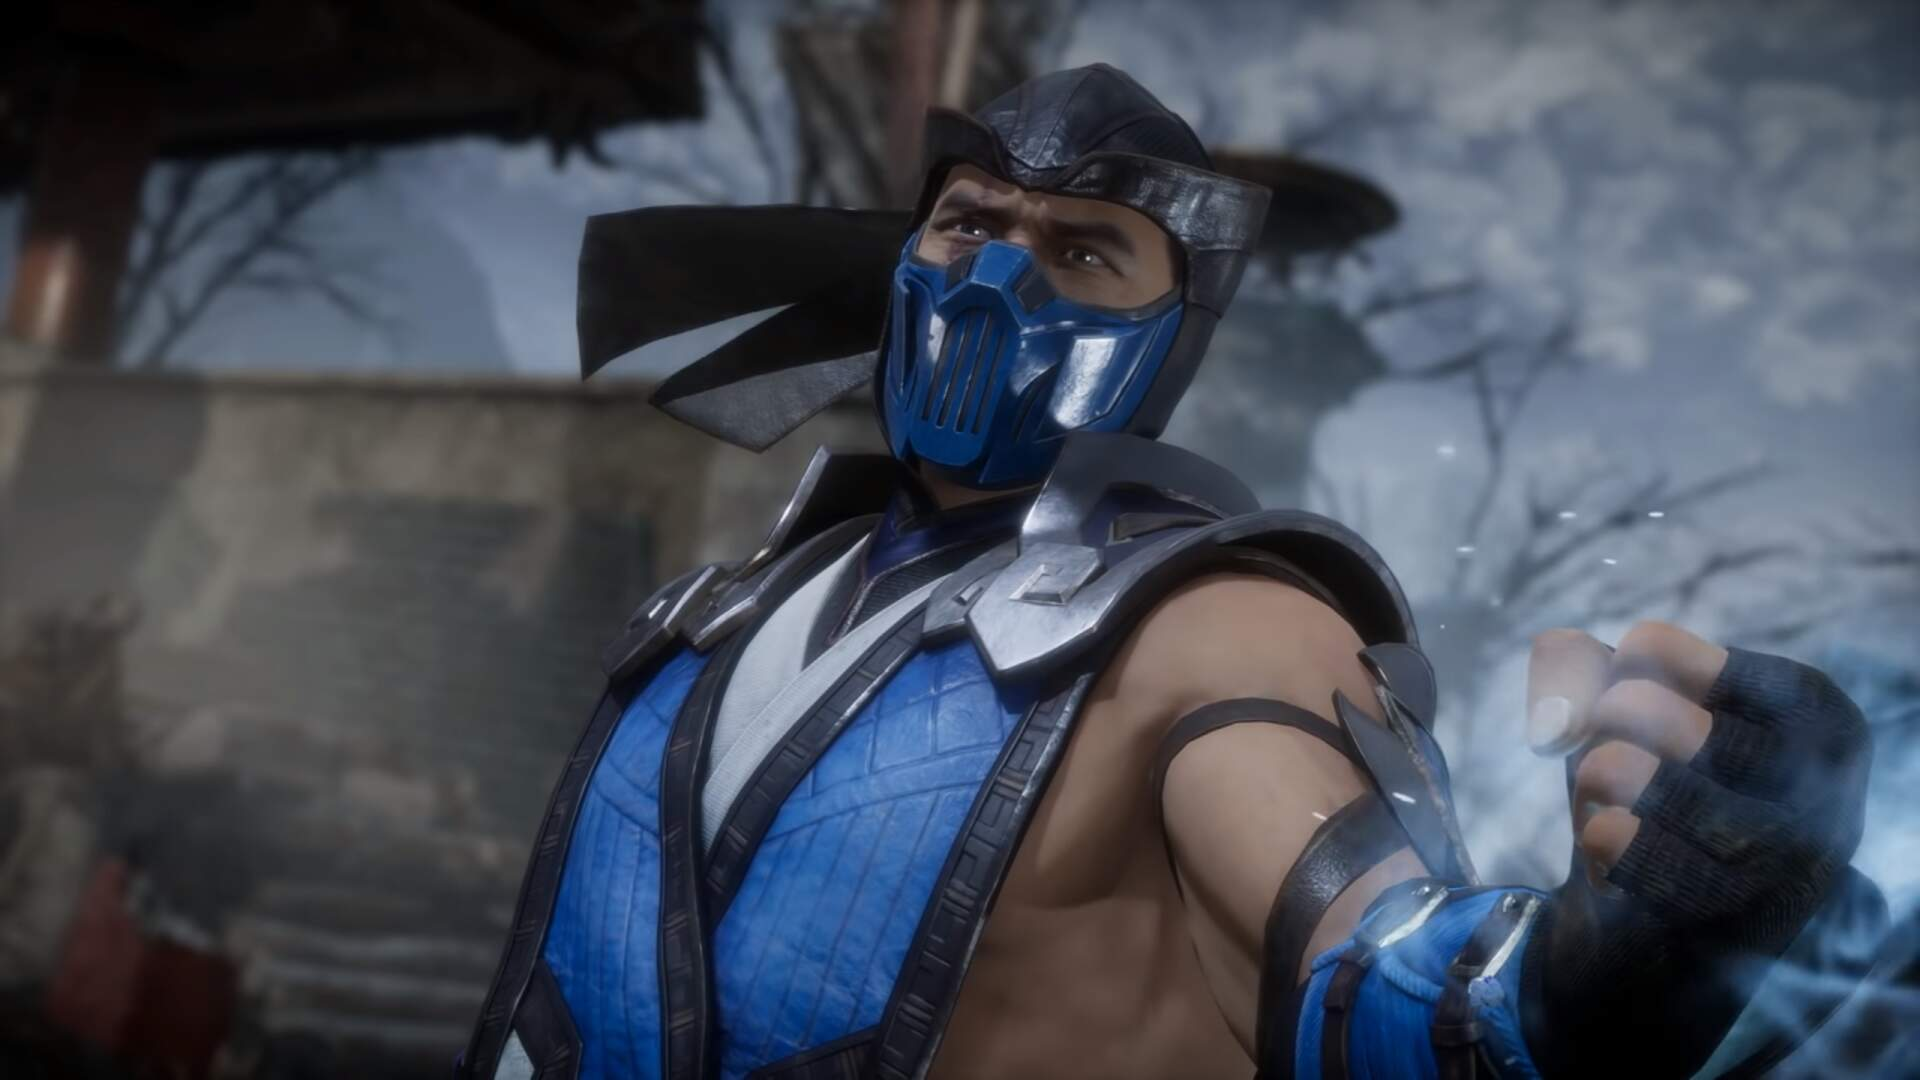 Mortal Kombat 11 Passes 8 Million Sales Mark, Will Reveal What's Next This Week